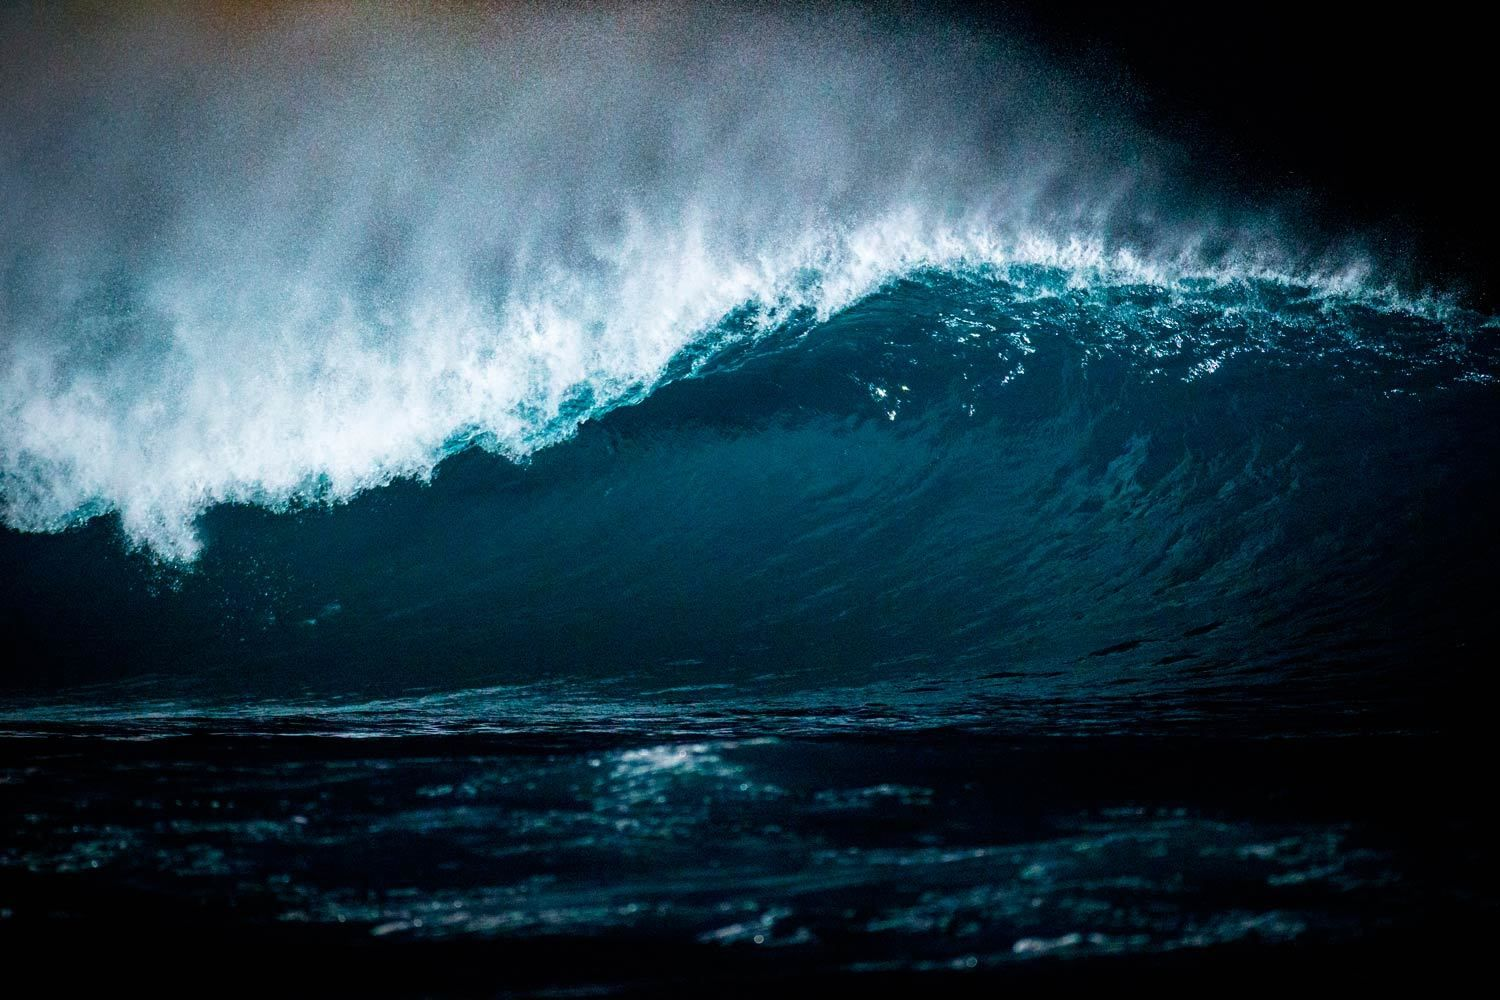 Pipeline on the north shore of Oahu, HI